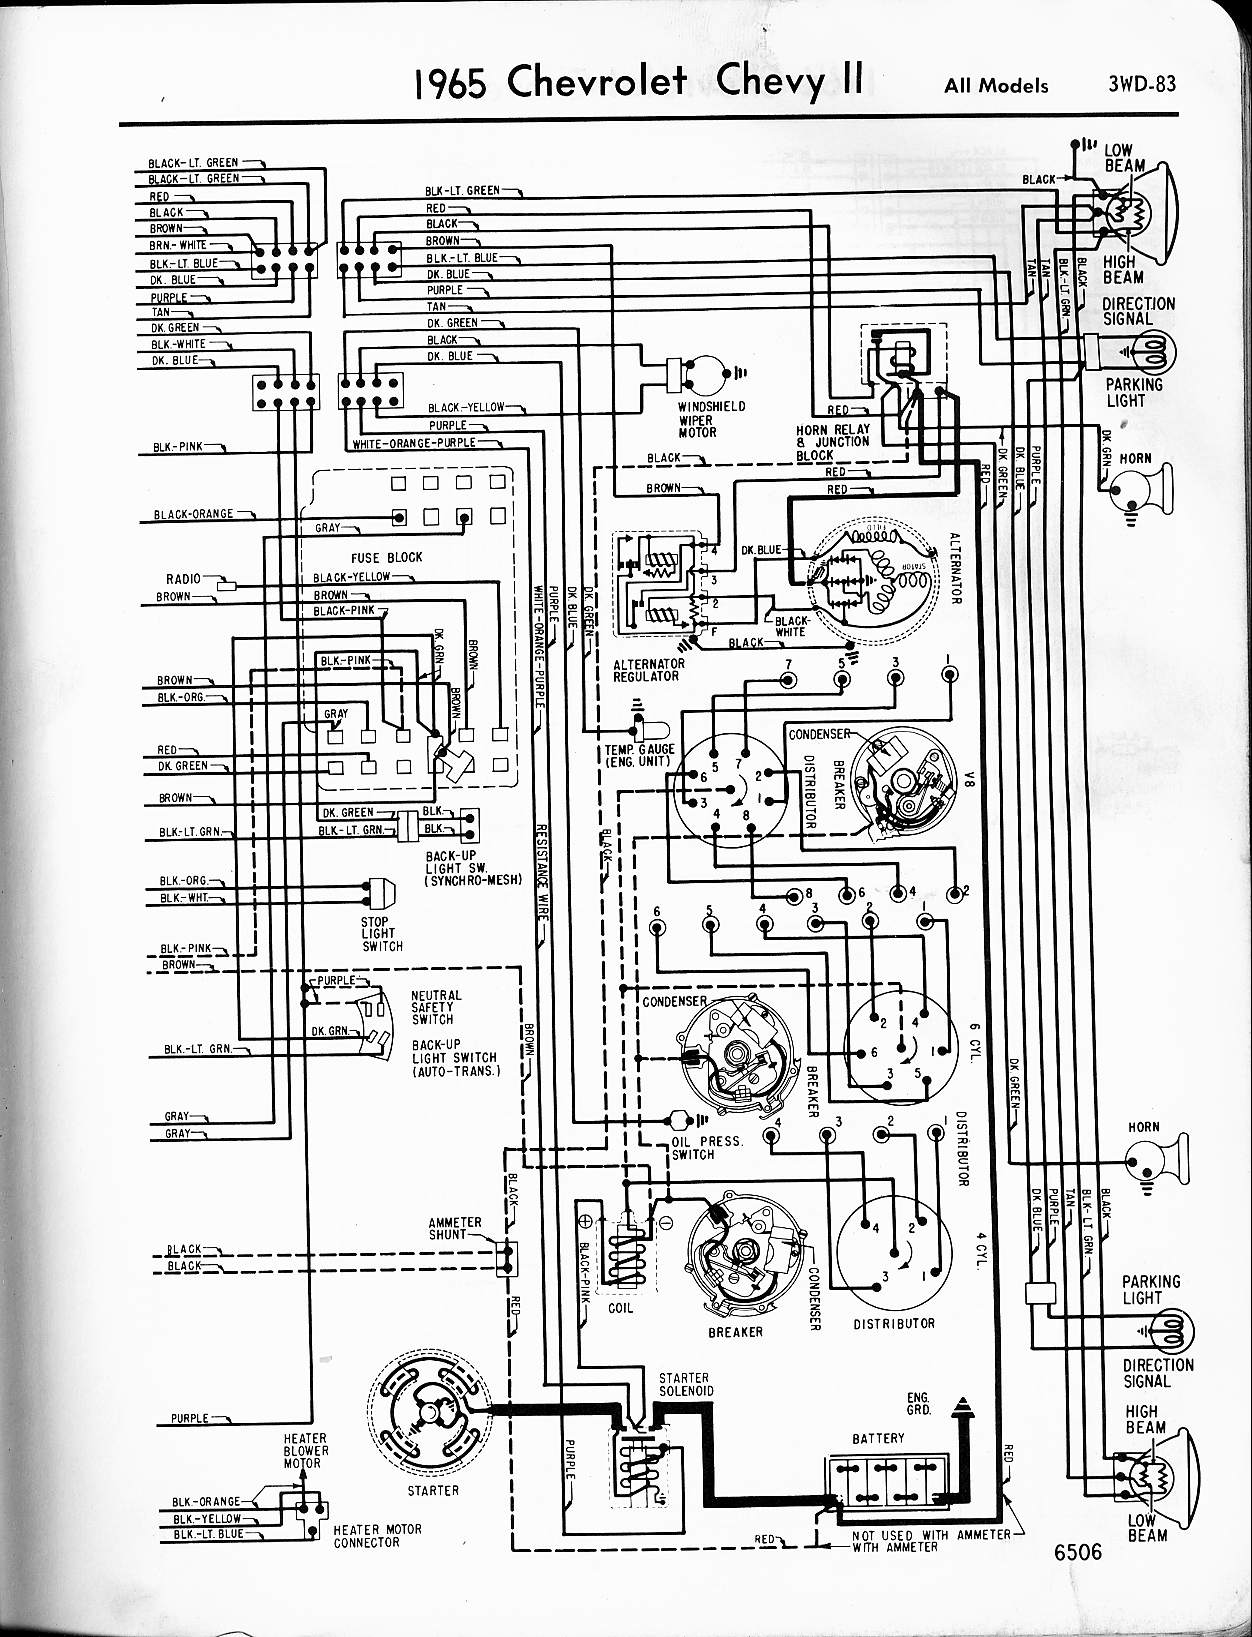 MWireChev65_3WD 083 chevy diagrams 1971 chevy truck wiring diagram at mifinder.co